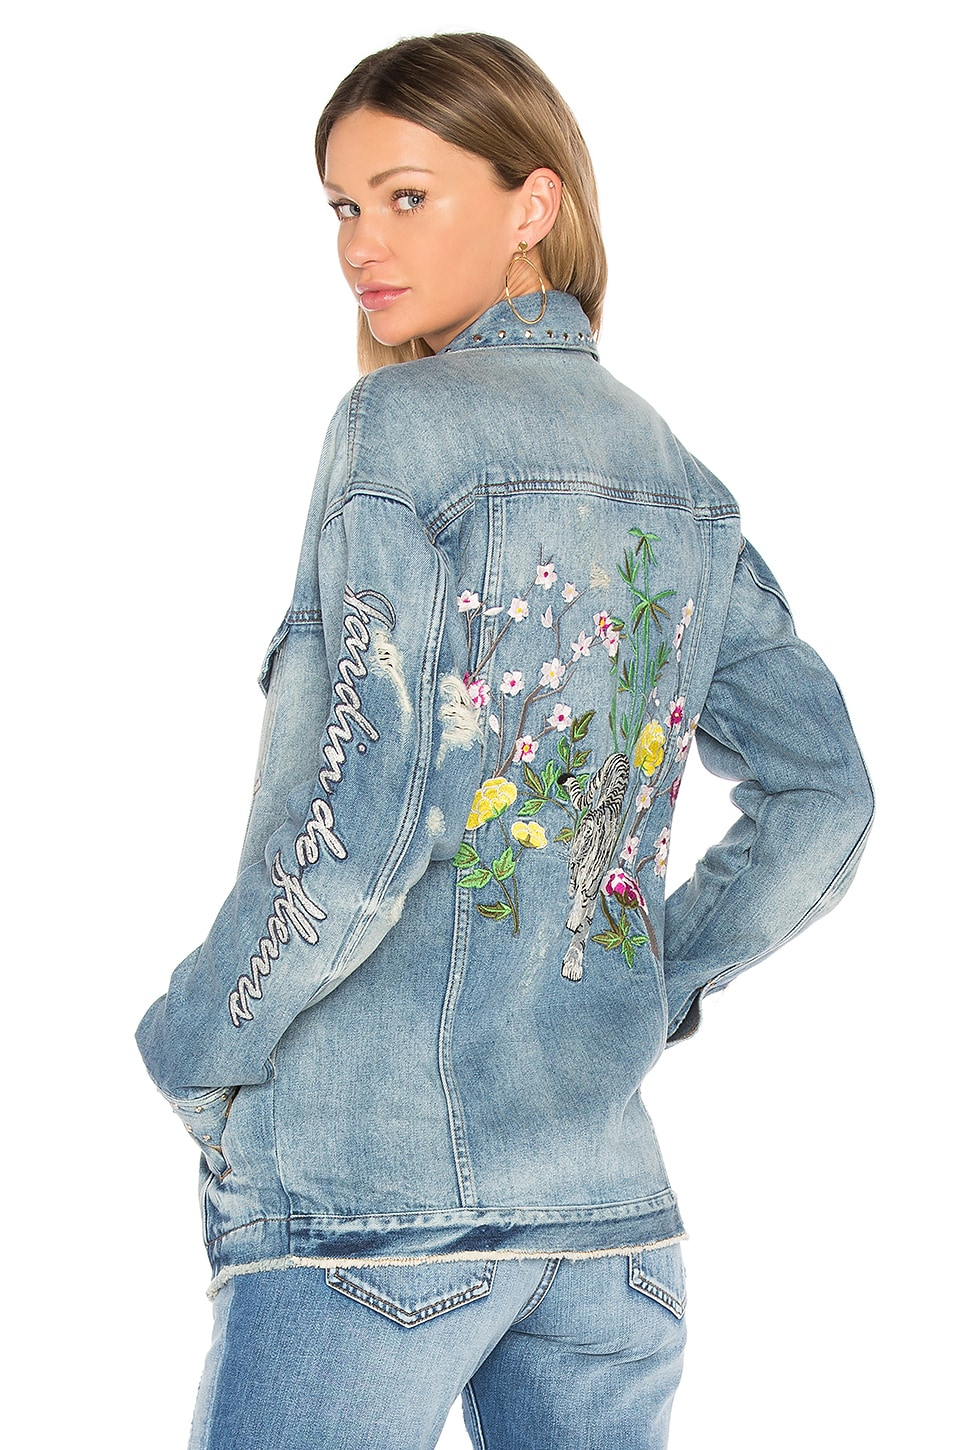 ei8ht dreams Embellished Oversized Denim Jacket in Medium Destroyed